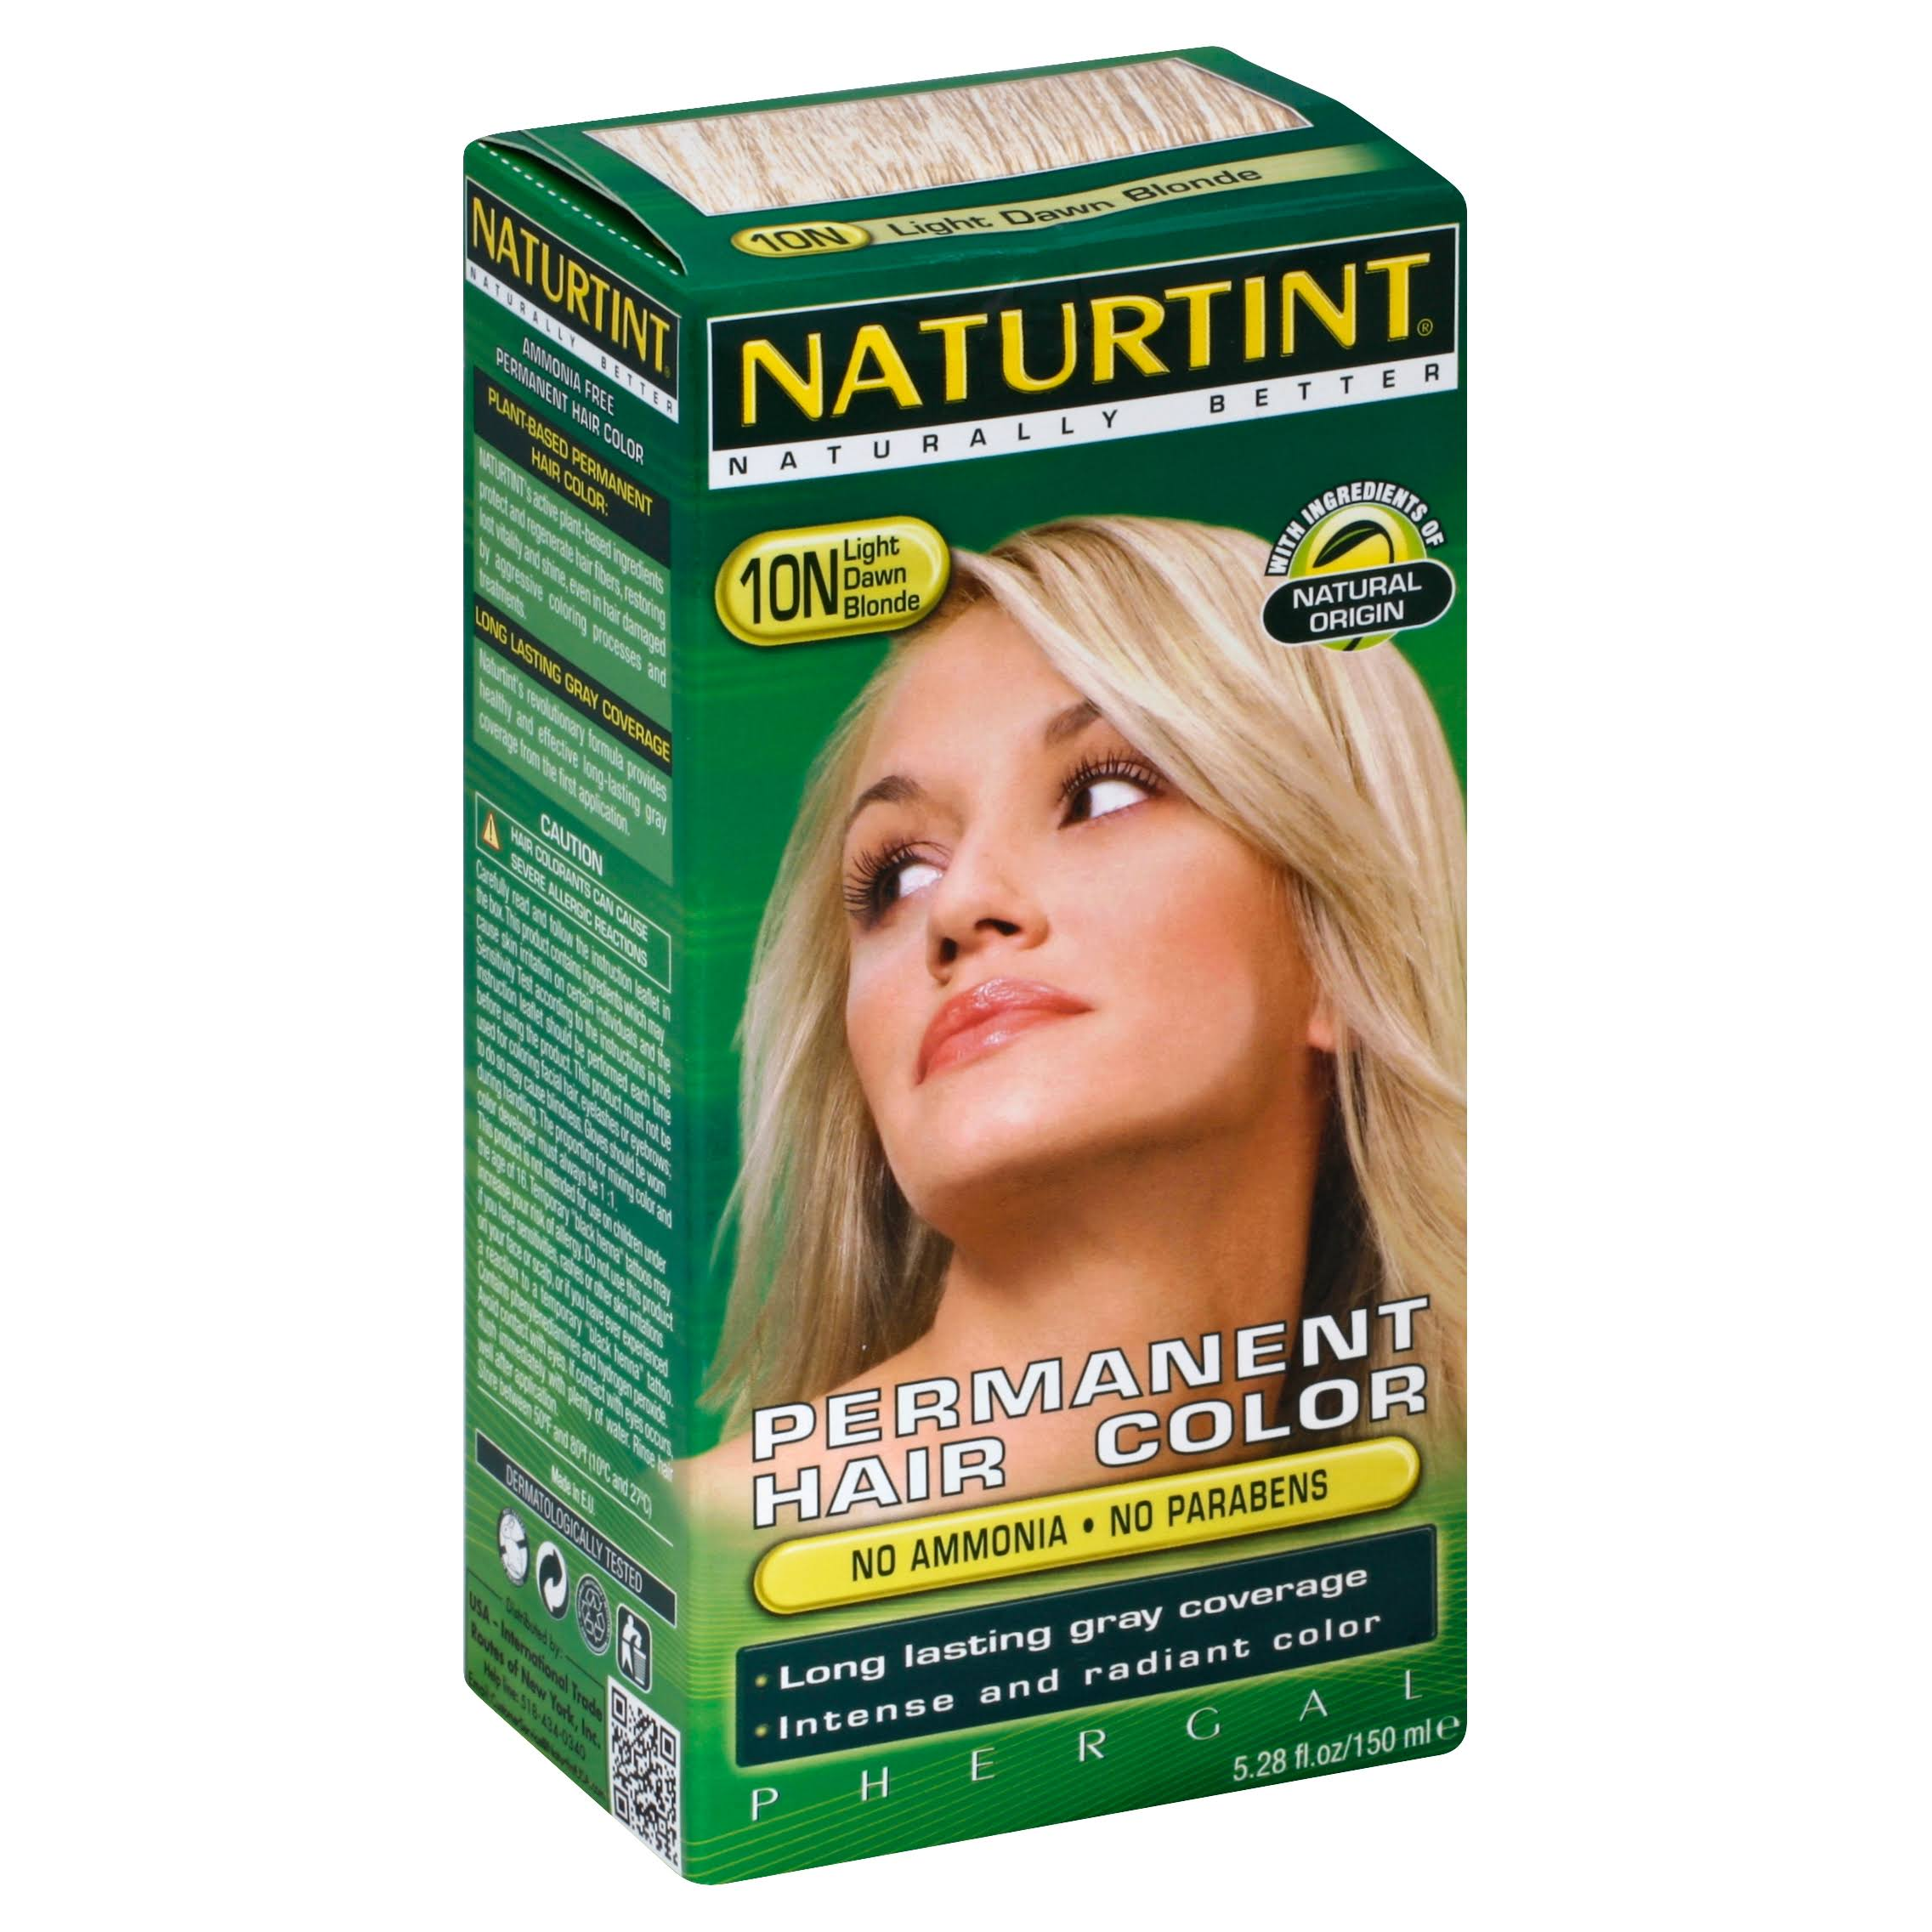 Naturtint Permanent Hair Color 10N Light Dawn Blonde